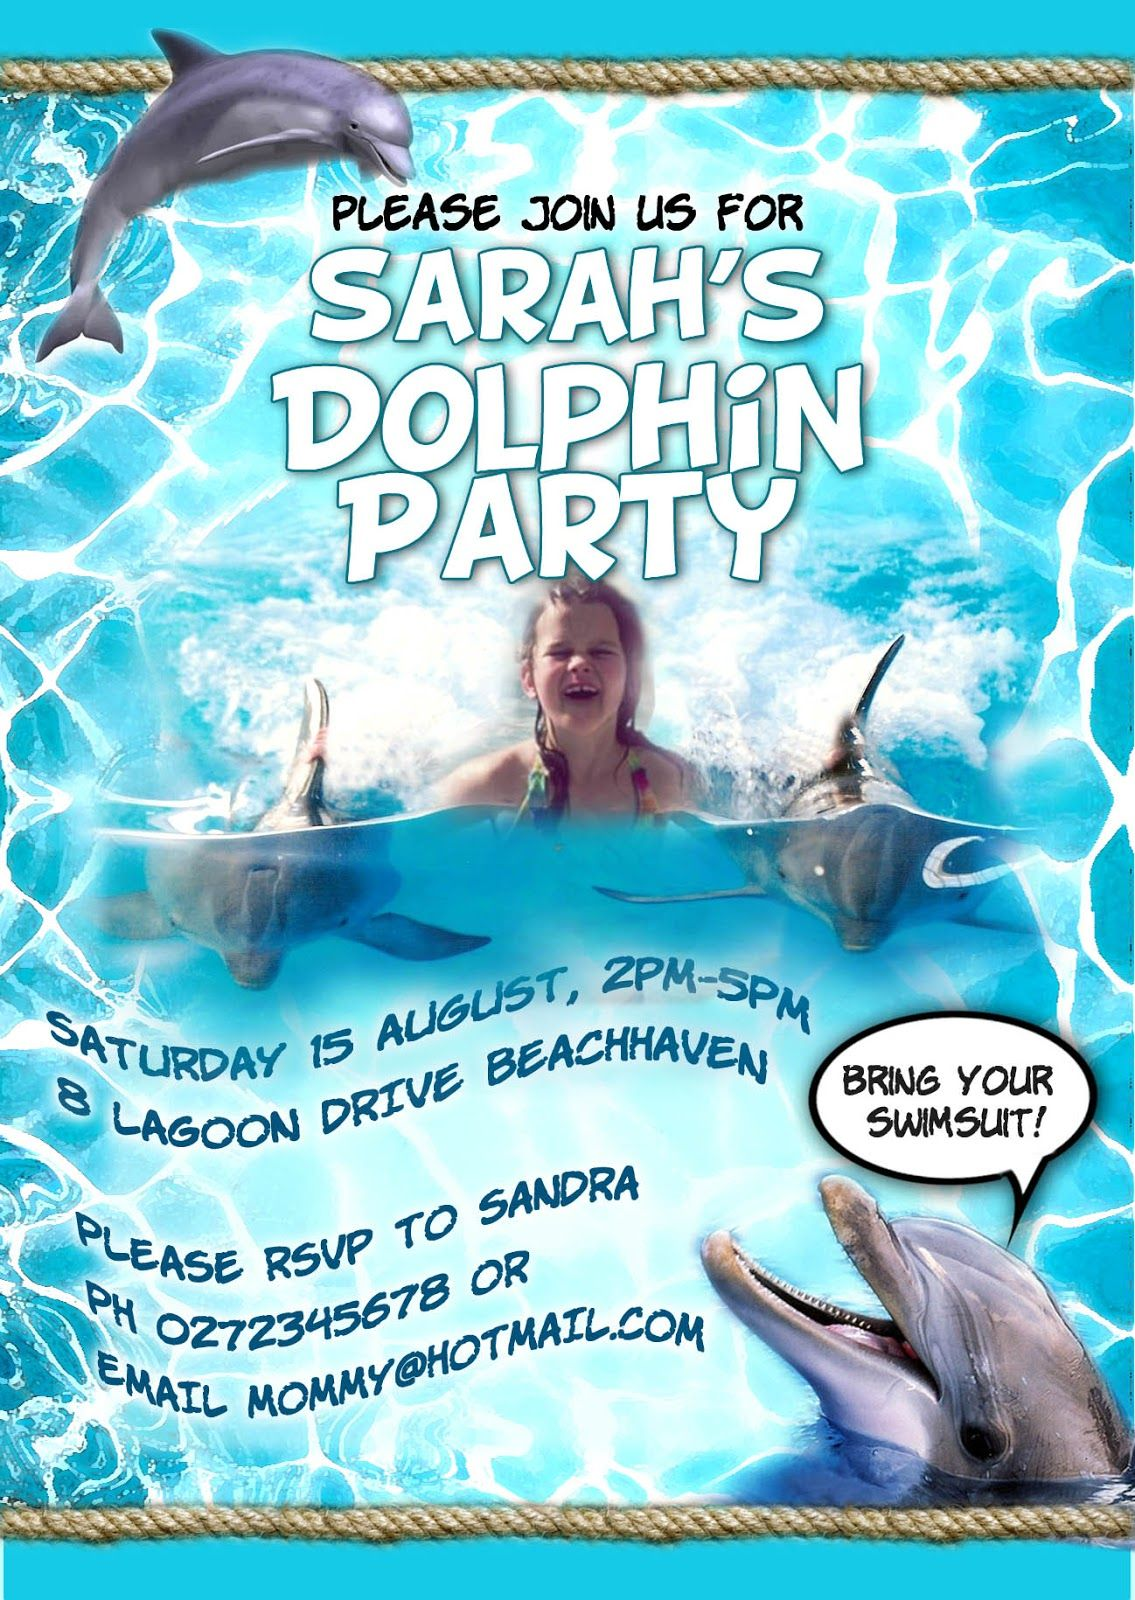 Free kids party invitations dolphin party invitation new kids free kids party invitations dolphin party invitation new filmwisefo Gallery